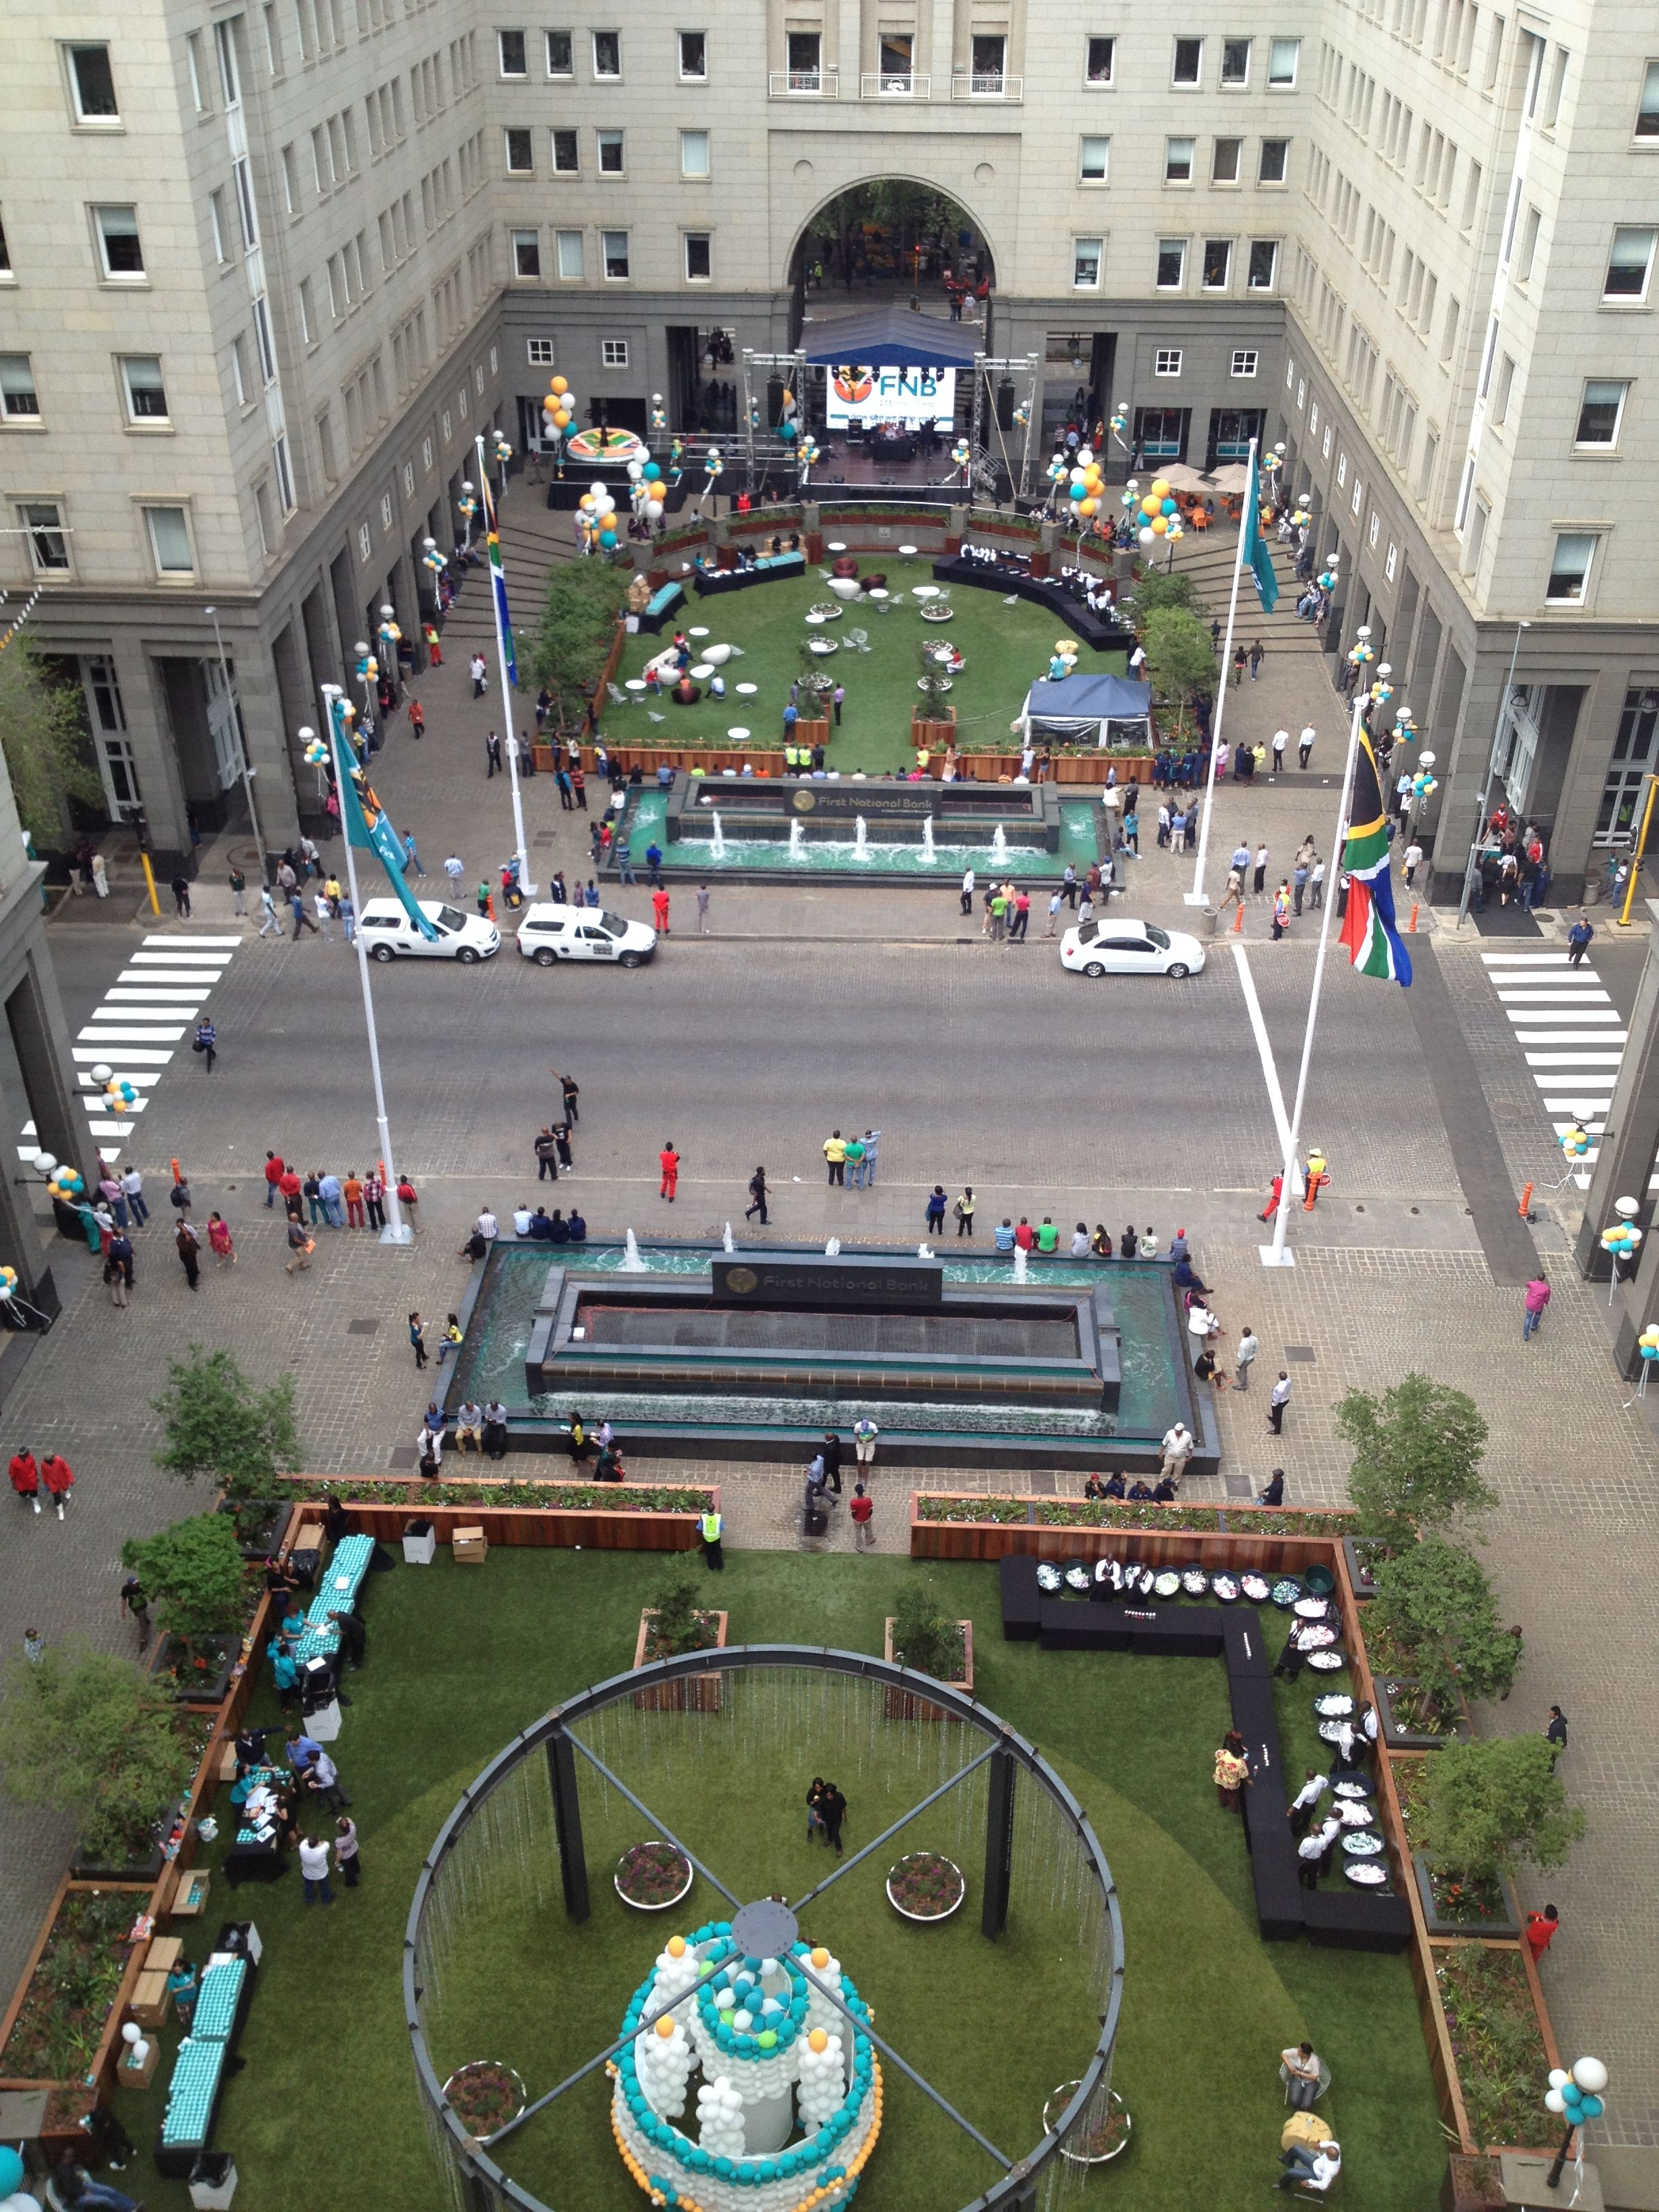 Fnb bank city johannesburg south africa greeninc for Landscape architects south africa